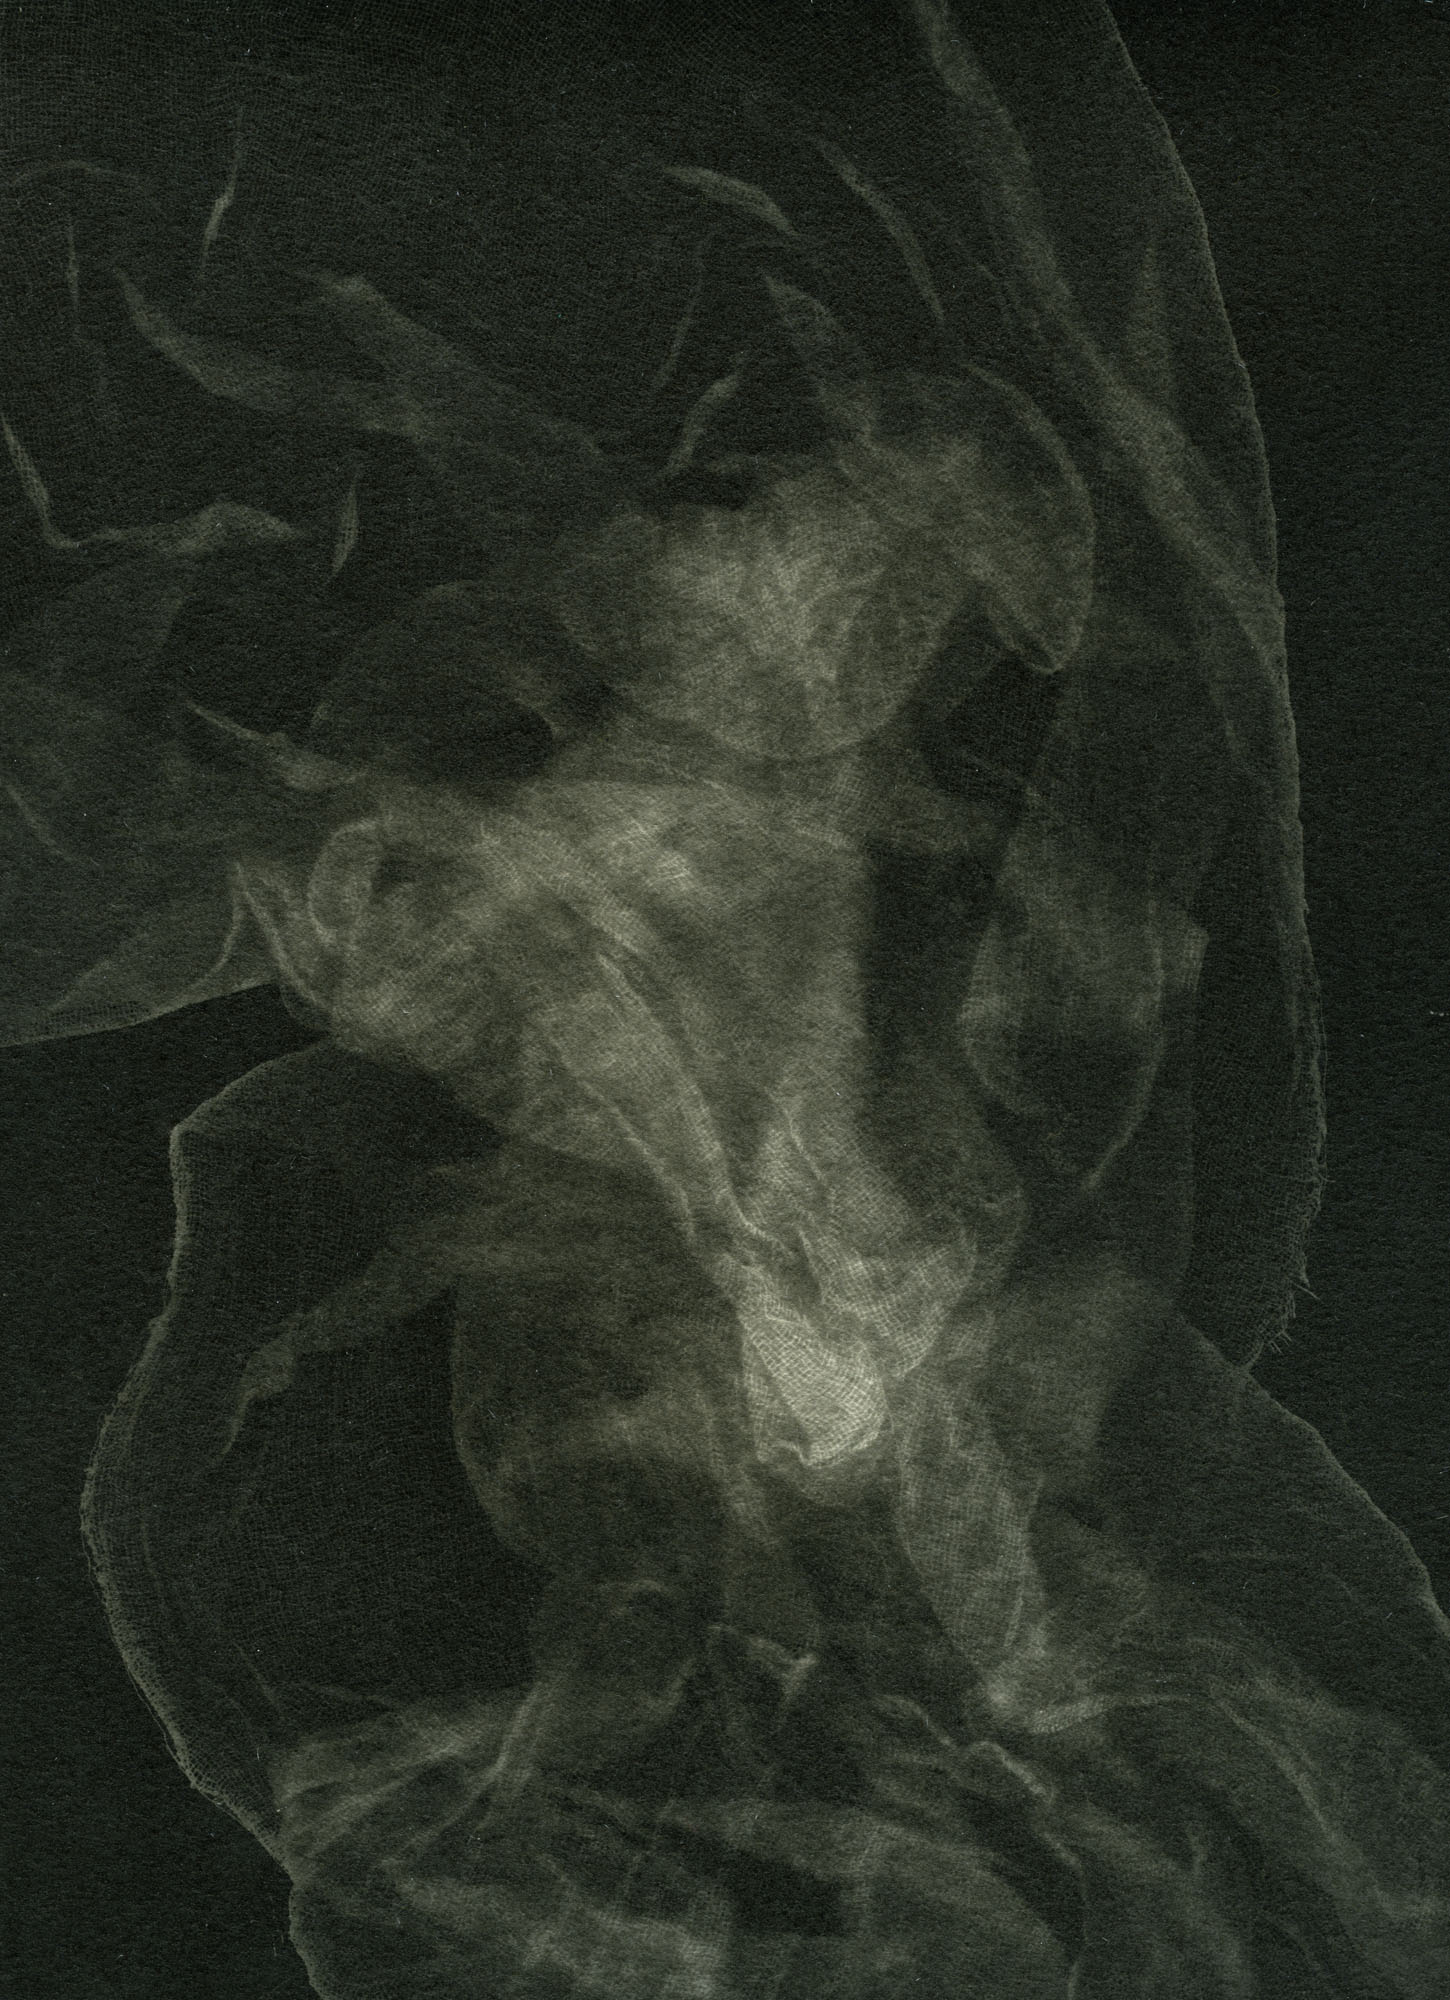 A photogram of a gauze like material.